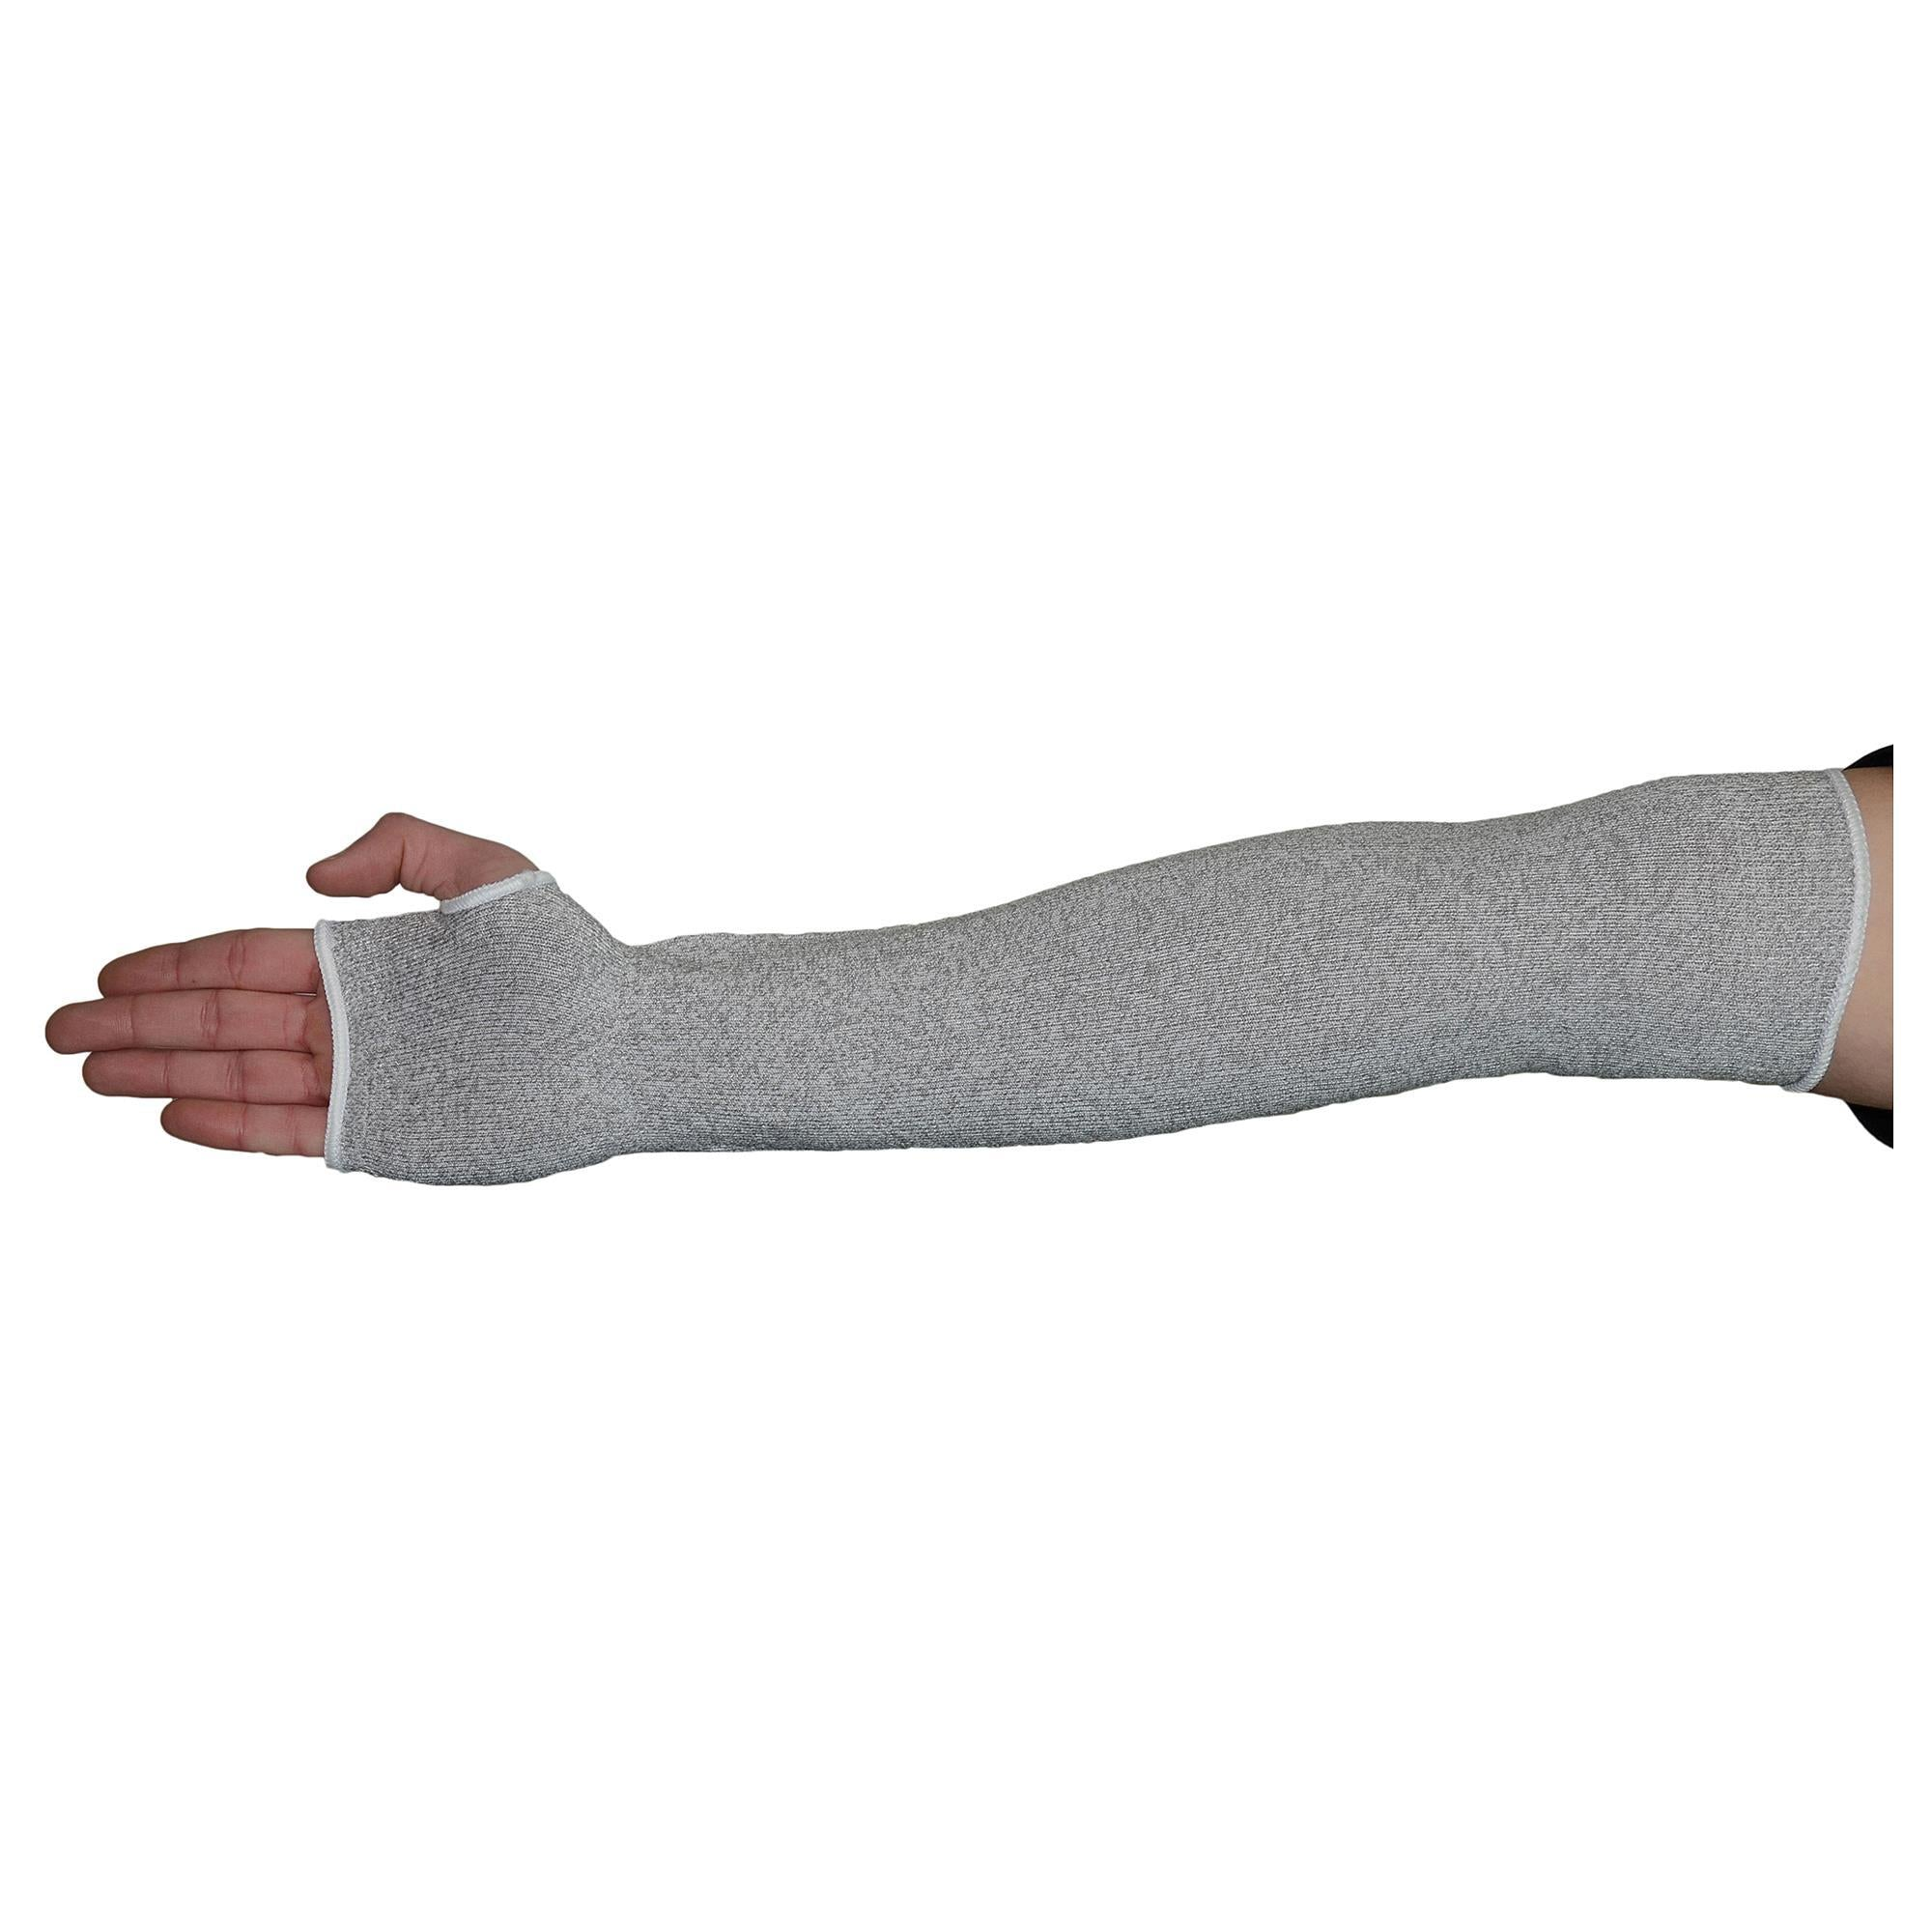 "22290 18"" HPPE Cut Resistant Arm Sleeve 1pc"